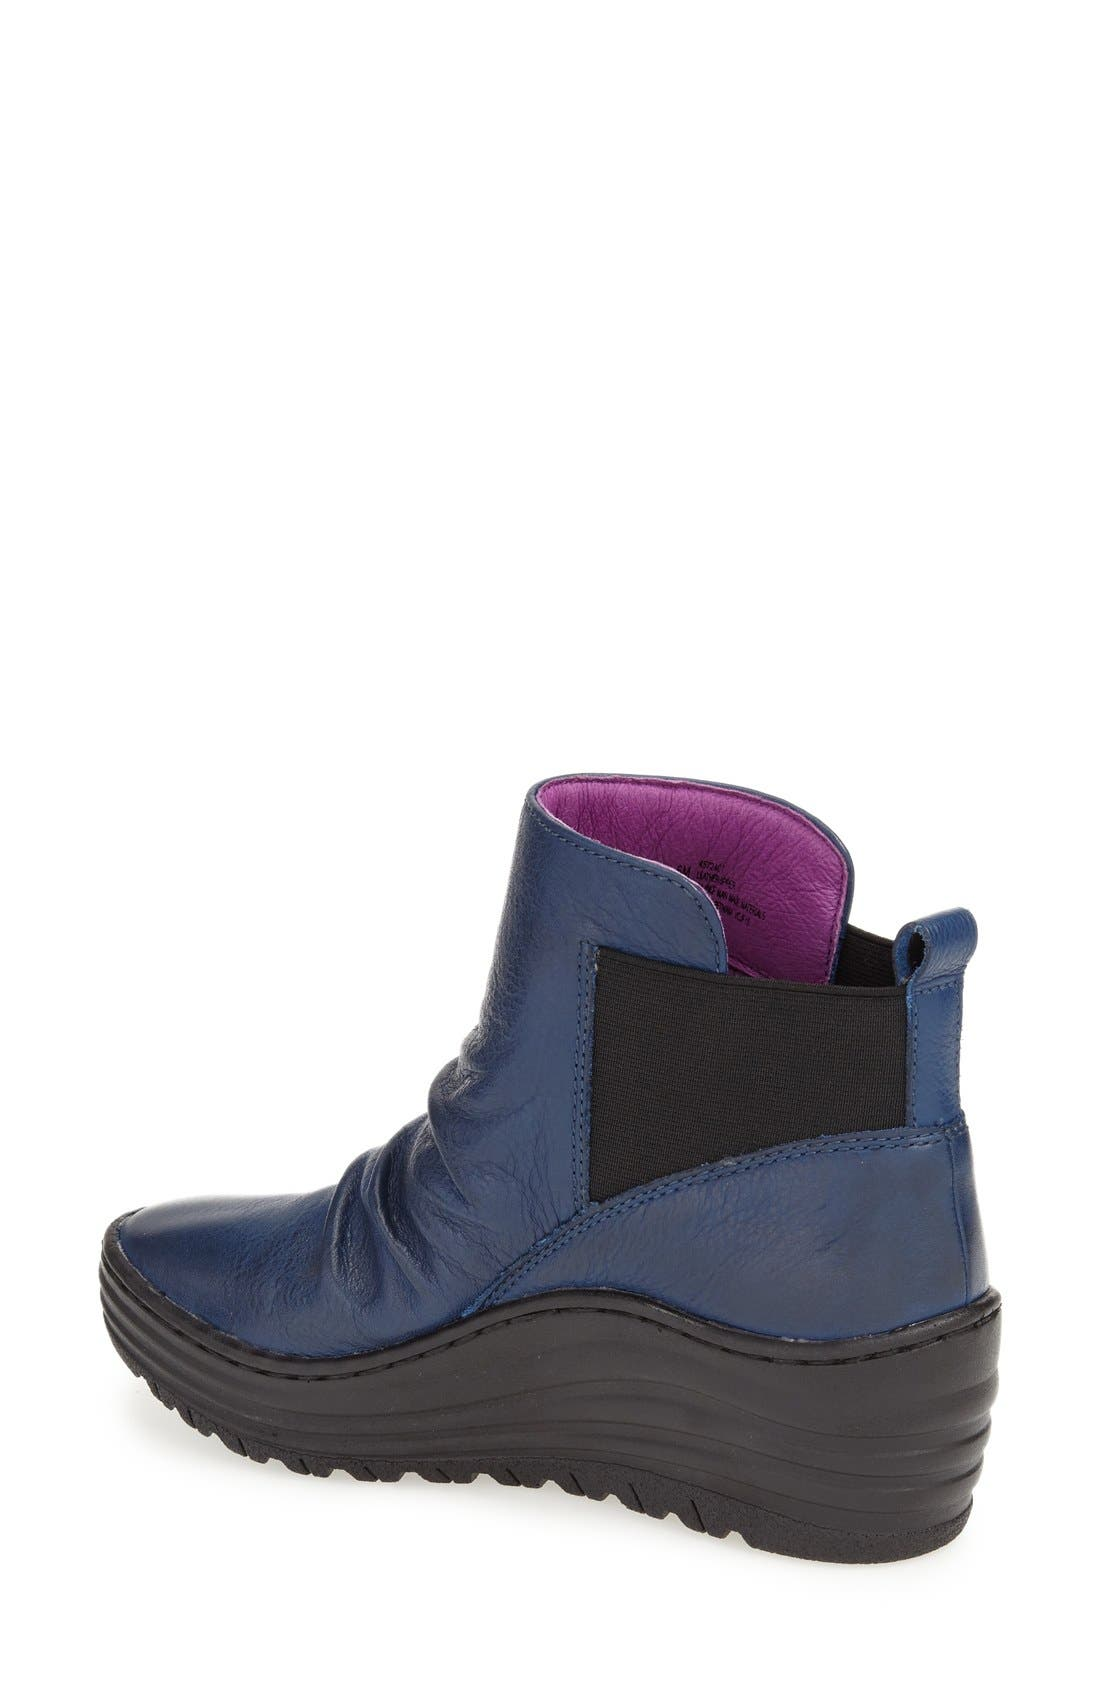 Alternate Image 2  - bionica 'Gilford' Wedge Bootie (Women)